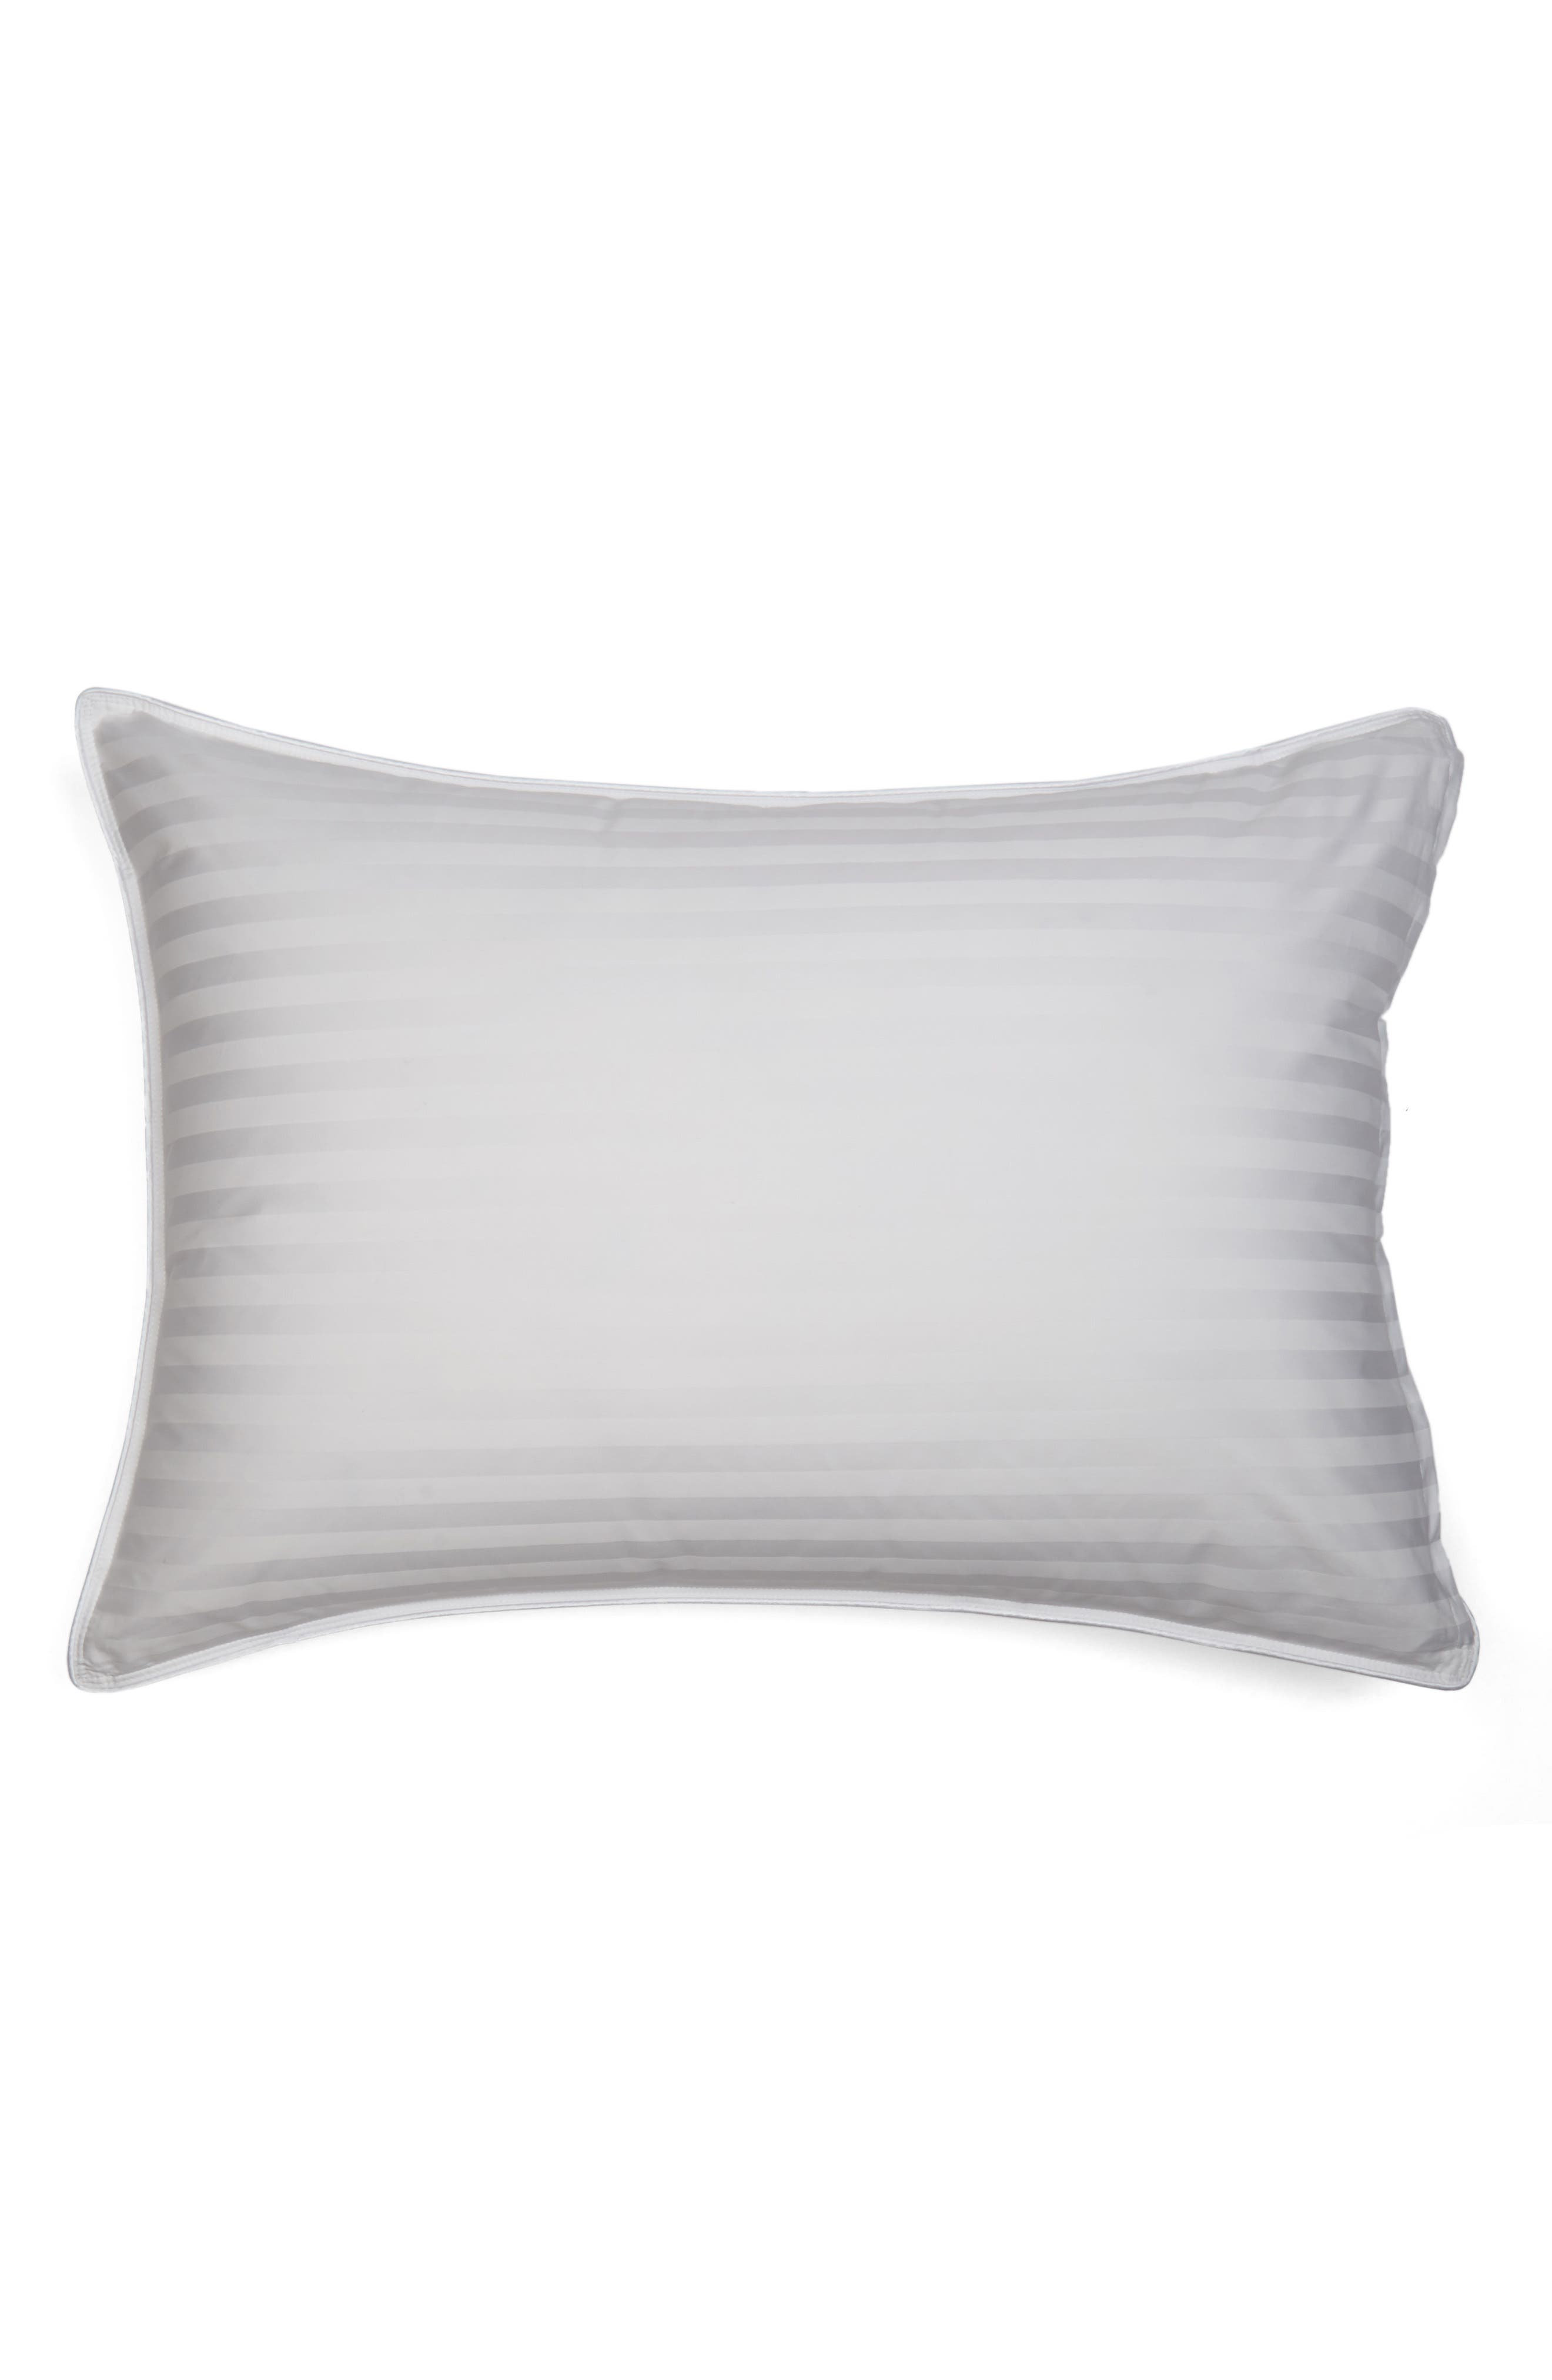 Nordstrom at Home Feather & Down Chamber Pillow